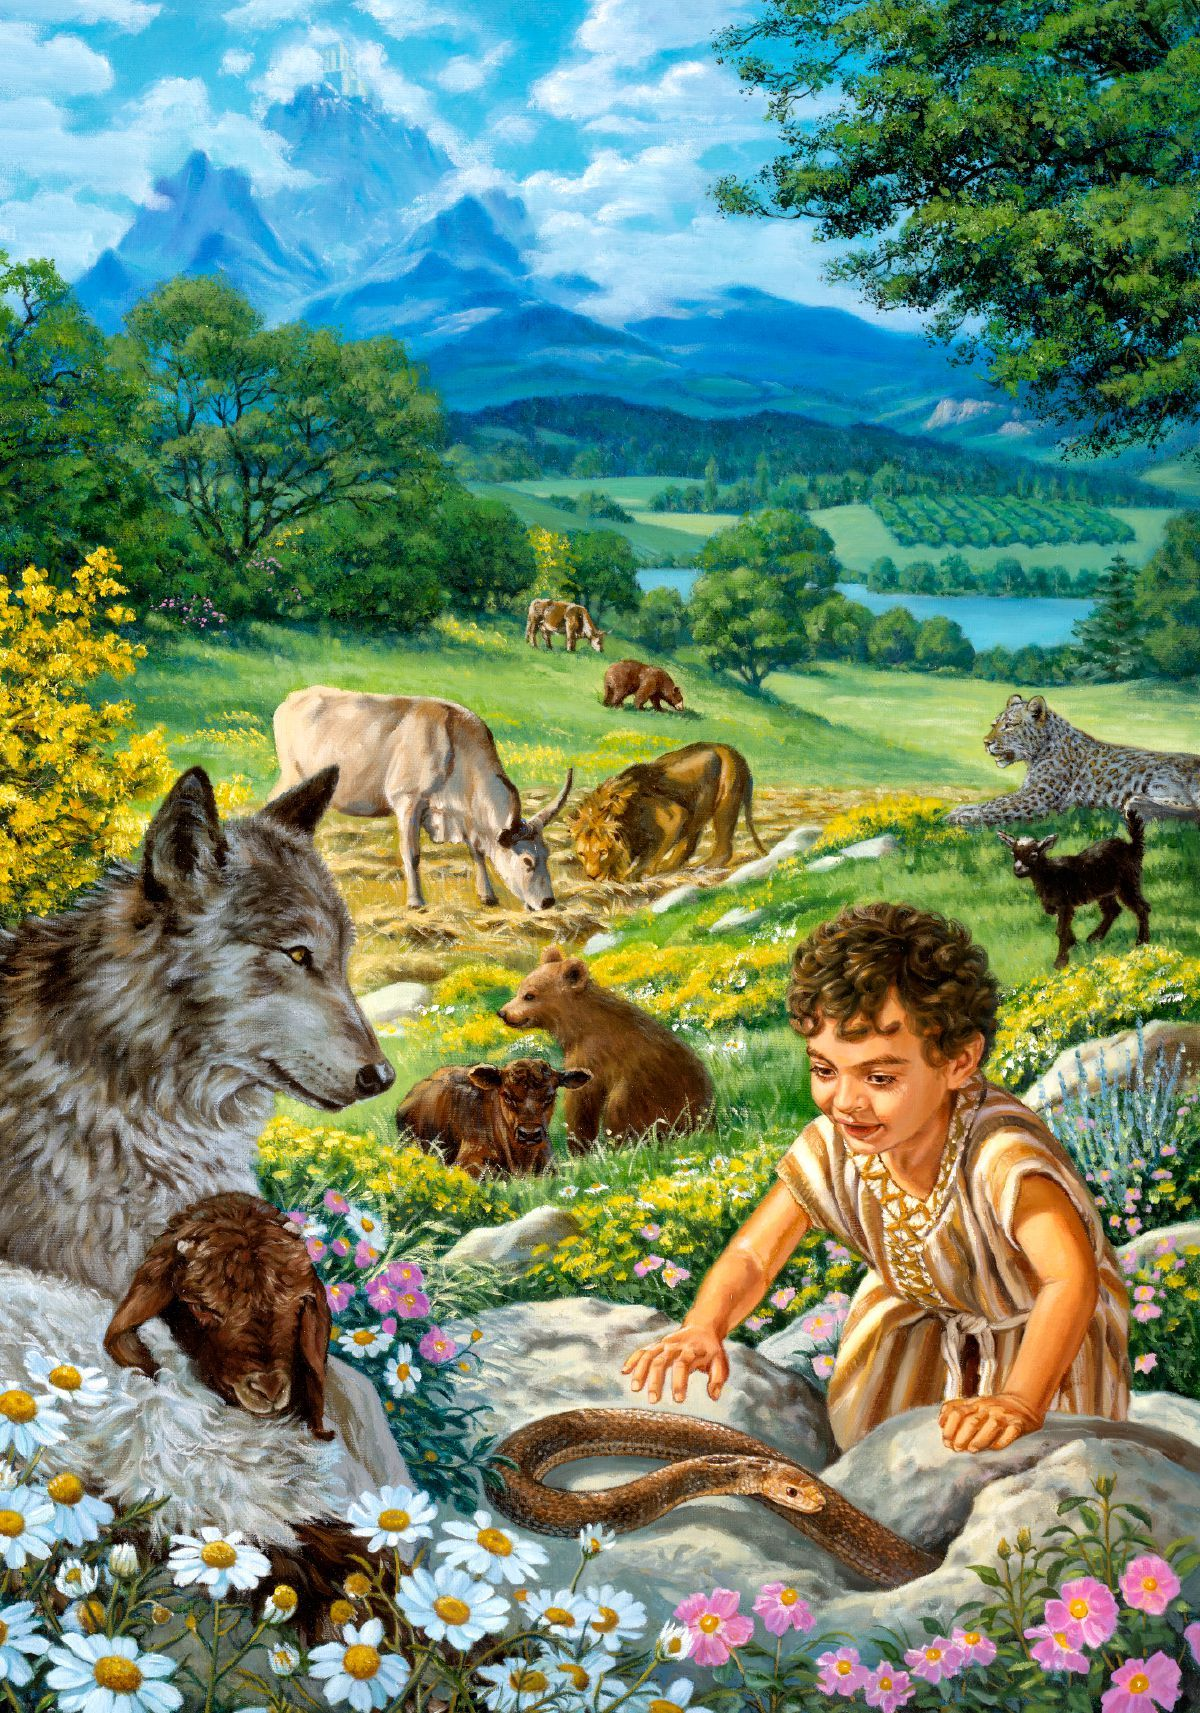 A Boy In Paradise Plays Among Wild Animals